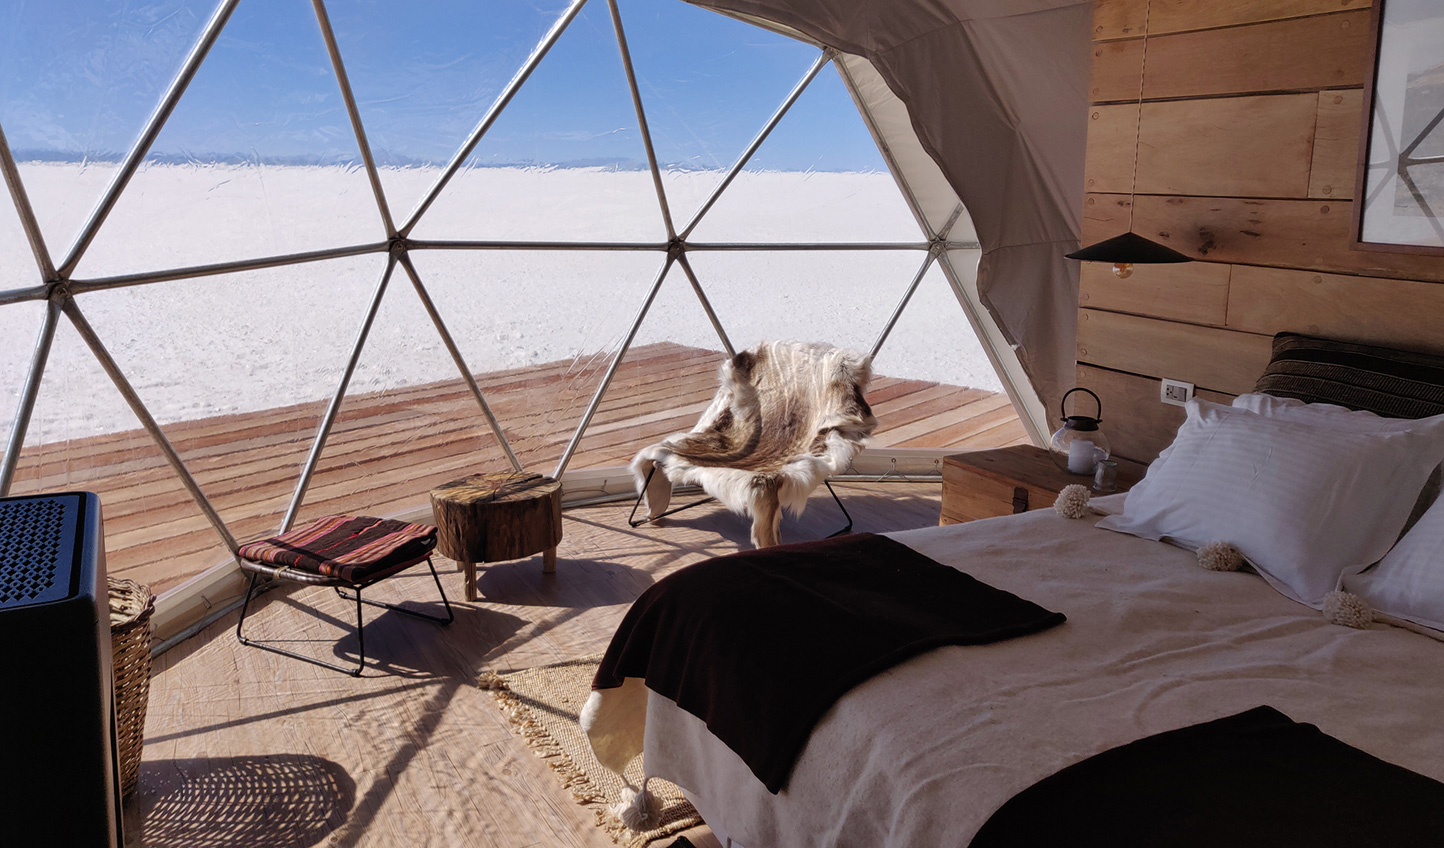 Wake up to uninterrupted views across the Salar